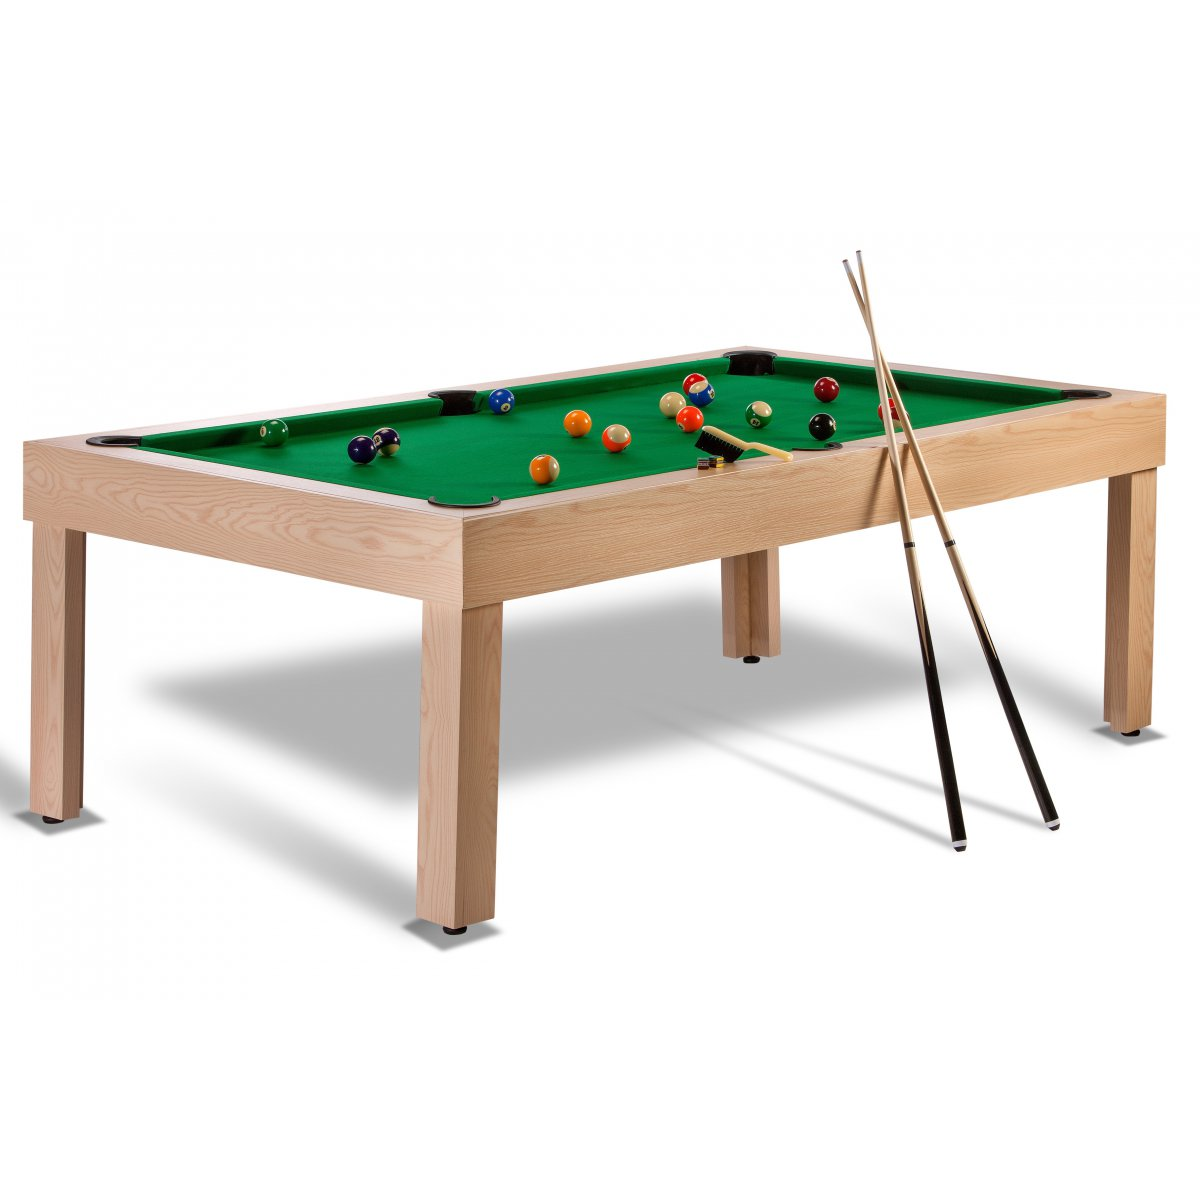 billard am ricain avec plateau table et accessoires inclus. Black Bedroom Furniture Sets. Home Design Ideas